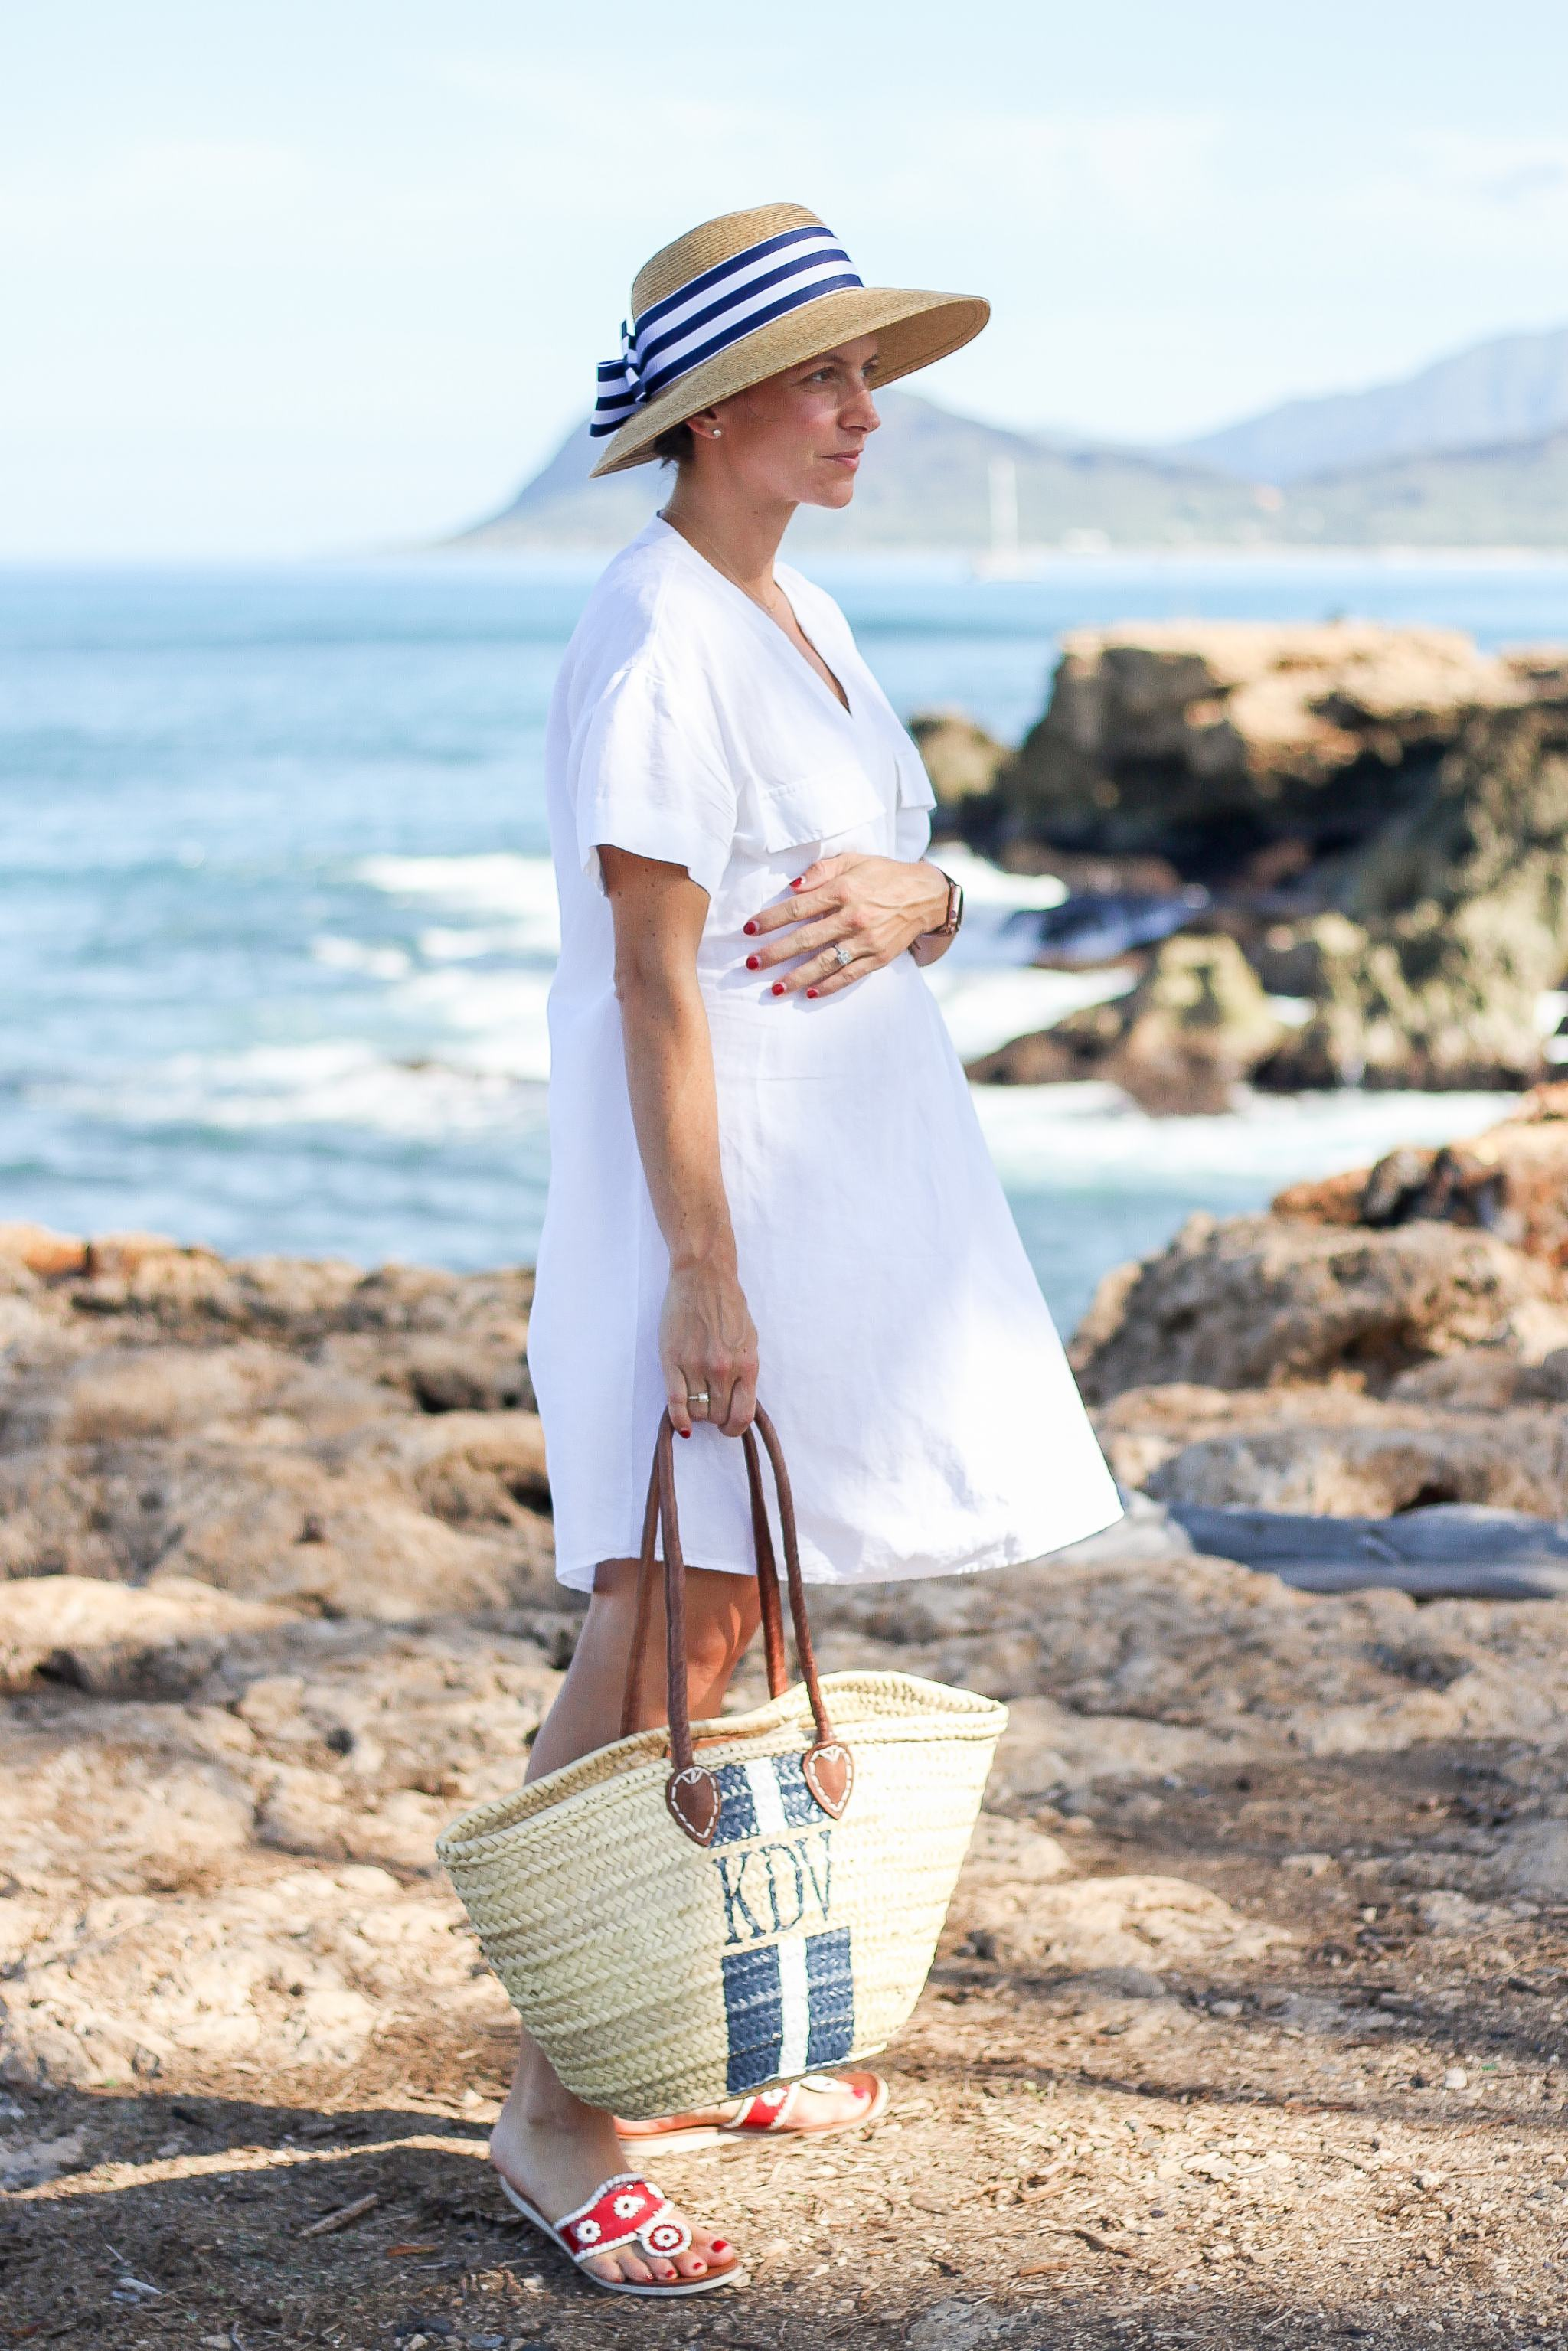 the monogram corner - Americana - basket bag - maternity style - 4th of july - 4th of july family outfit ideas - red white and blue outfits - blue and white outfits - summer style - beach outfit ideas - sun hat with bow - sun hat with striped ribbon - monogrammed bubble